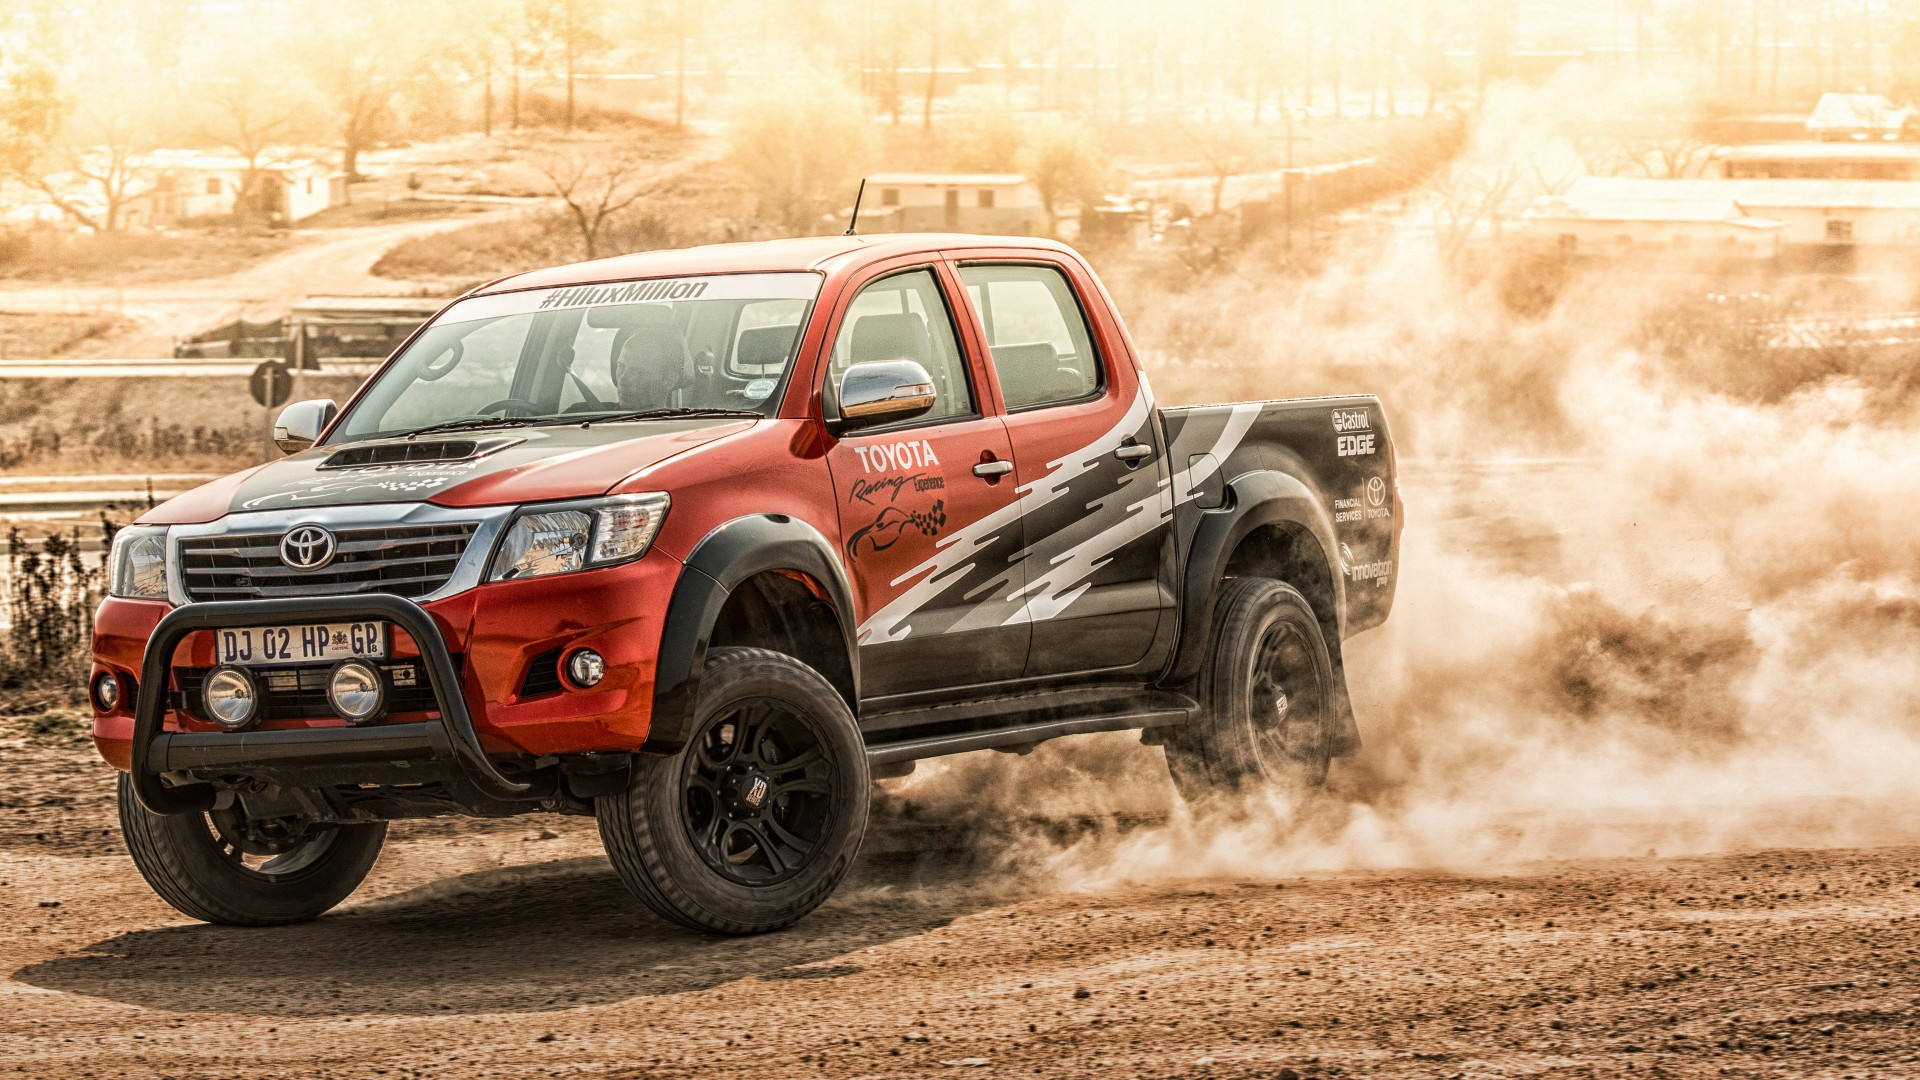 Bmw Car Pc Wallpapers Toyota Hilux 2015 Wallpaper Hd Car Wallpapers Id 5714